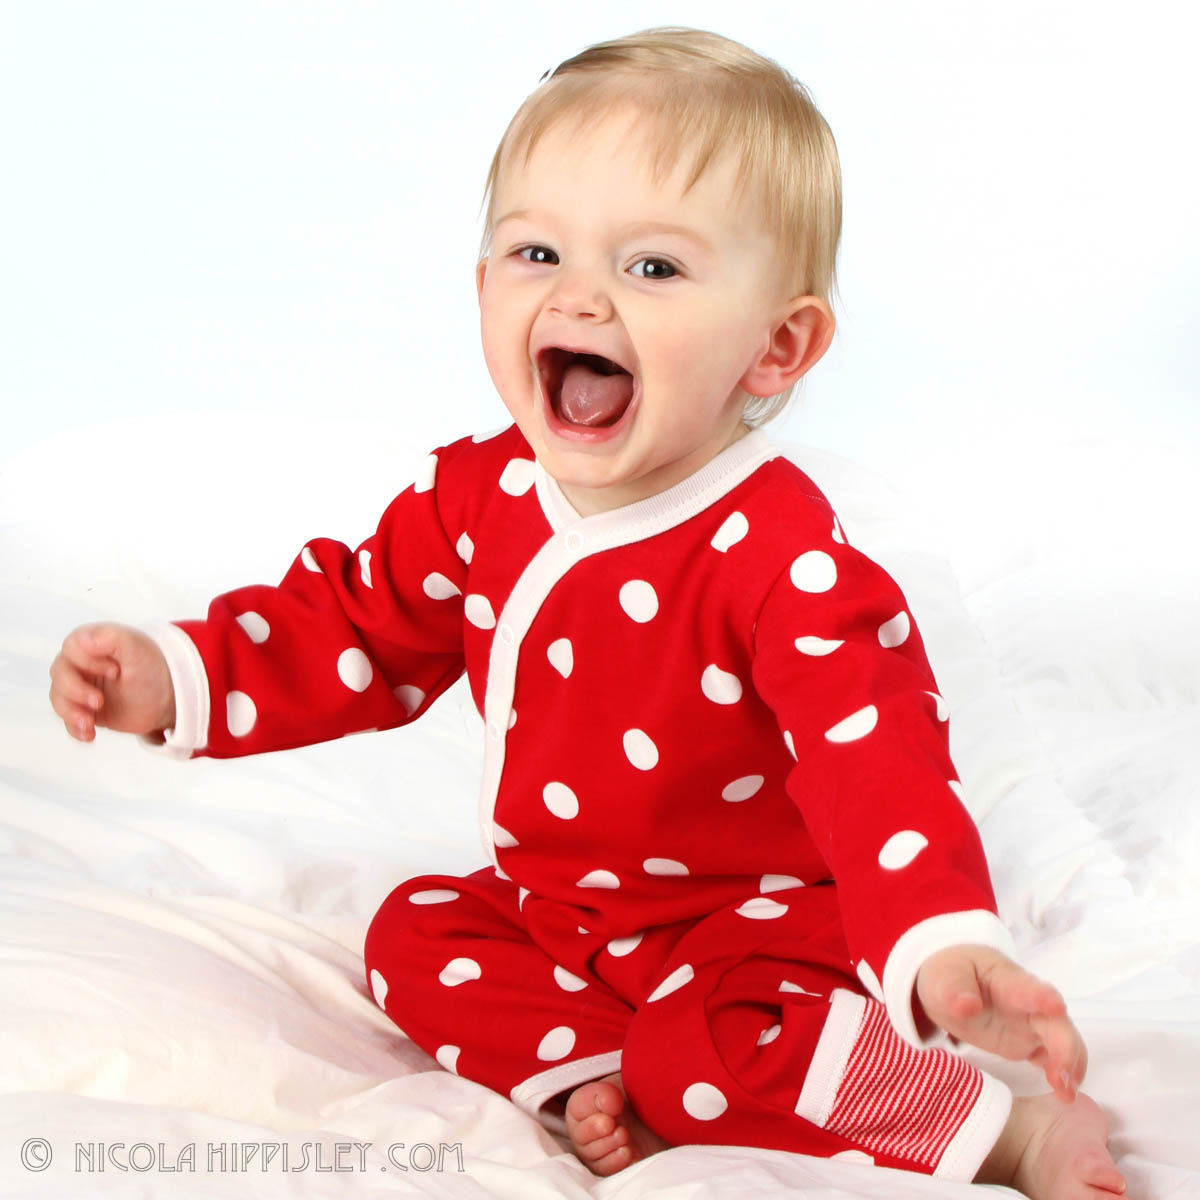 1laughing_baby_in_red.jpg